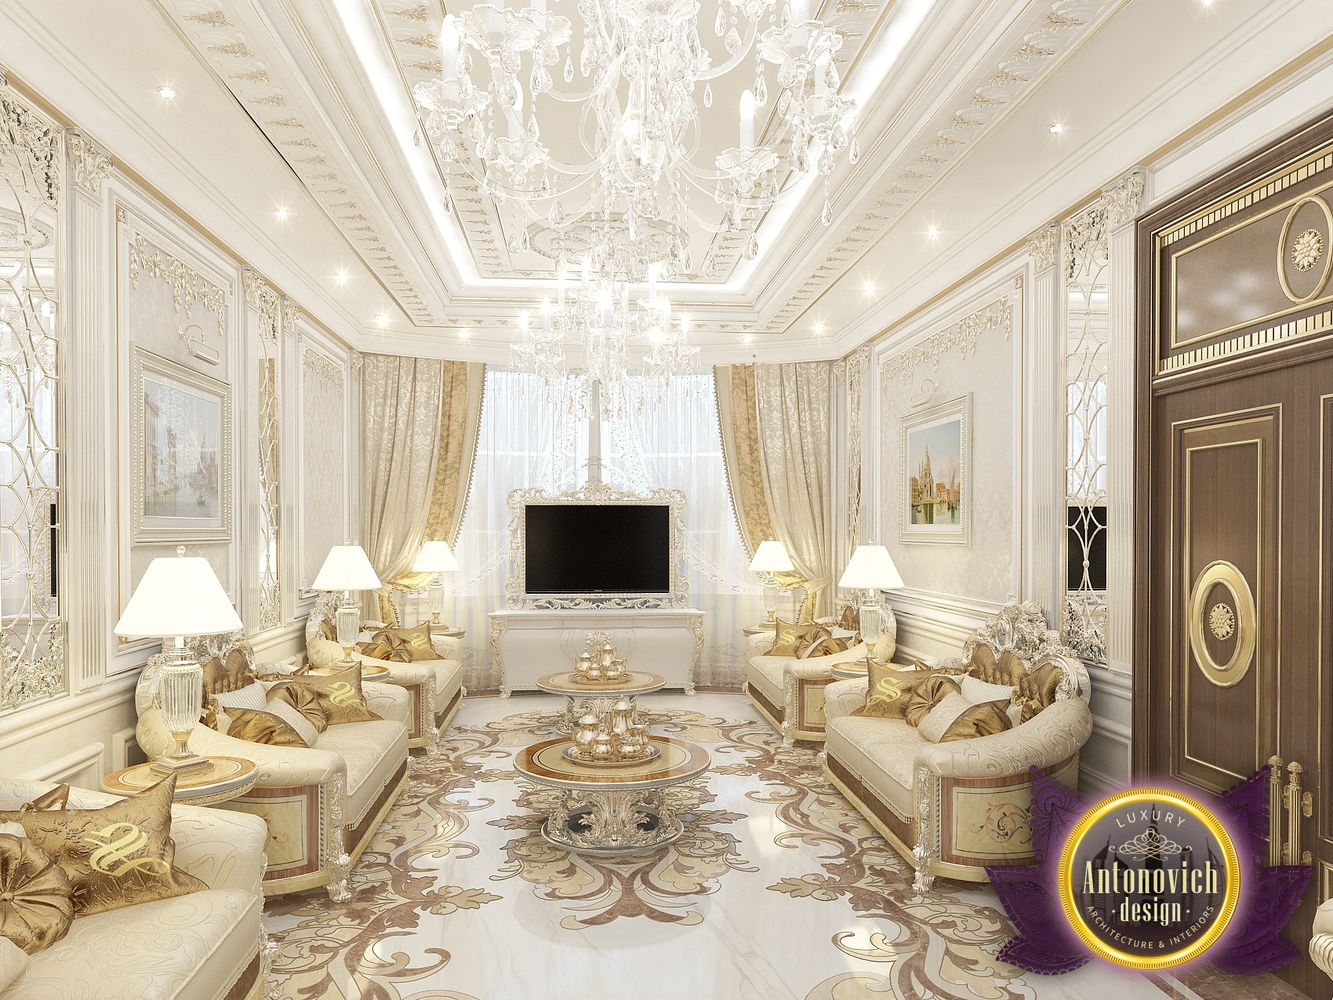 Luxury antonovich design uae living room interior design for Lounge interior ideas